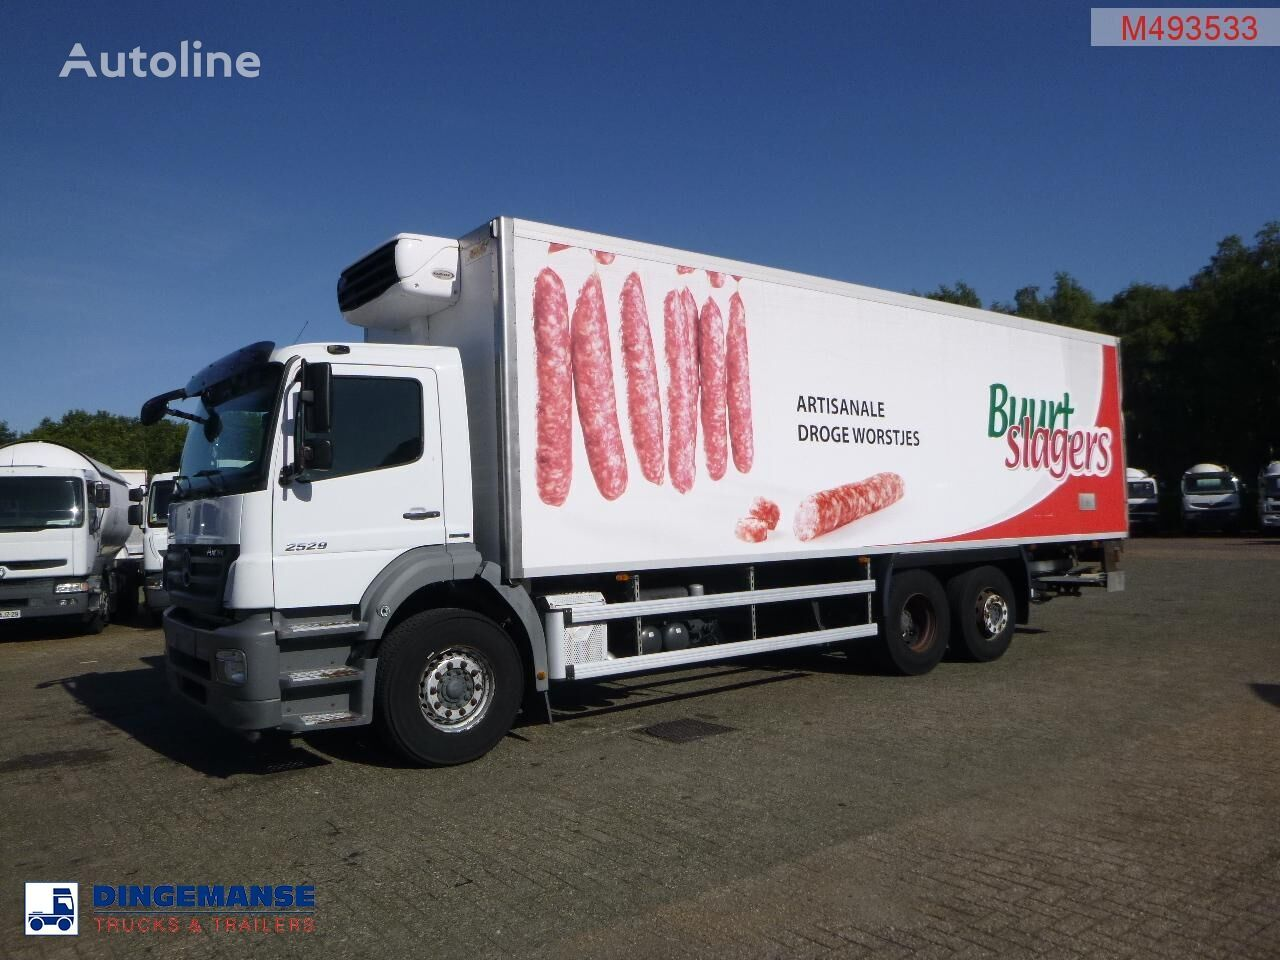 MERCEDES-BENZ Axor 2529 6x2 Euro 5 Carrier Xarios 600 frigo refrigerated truck